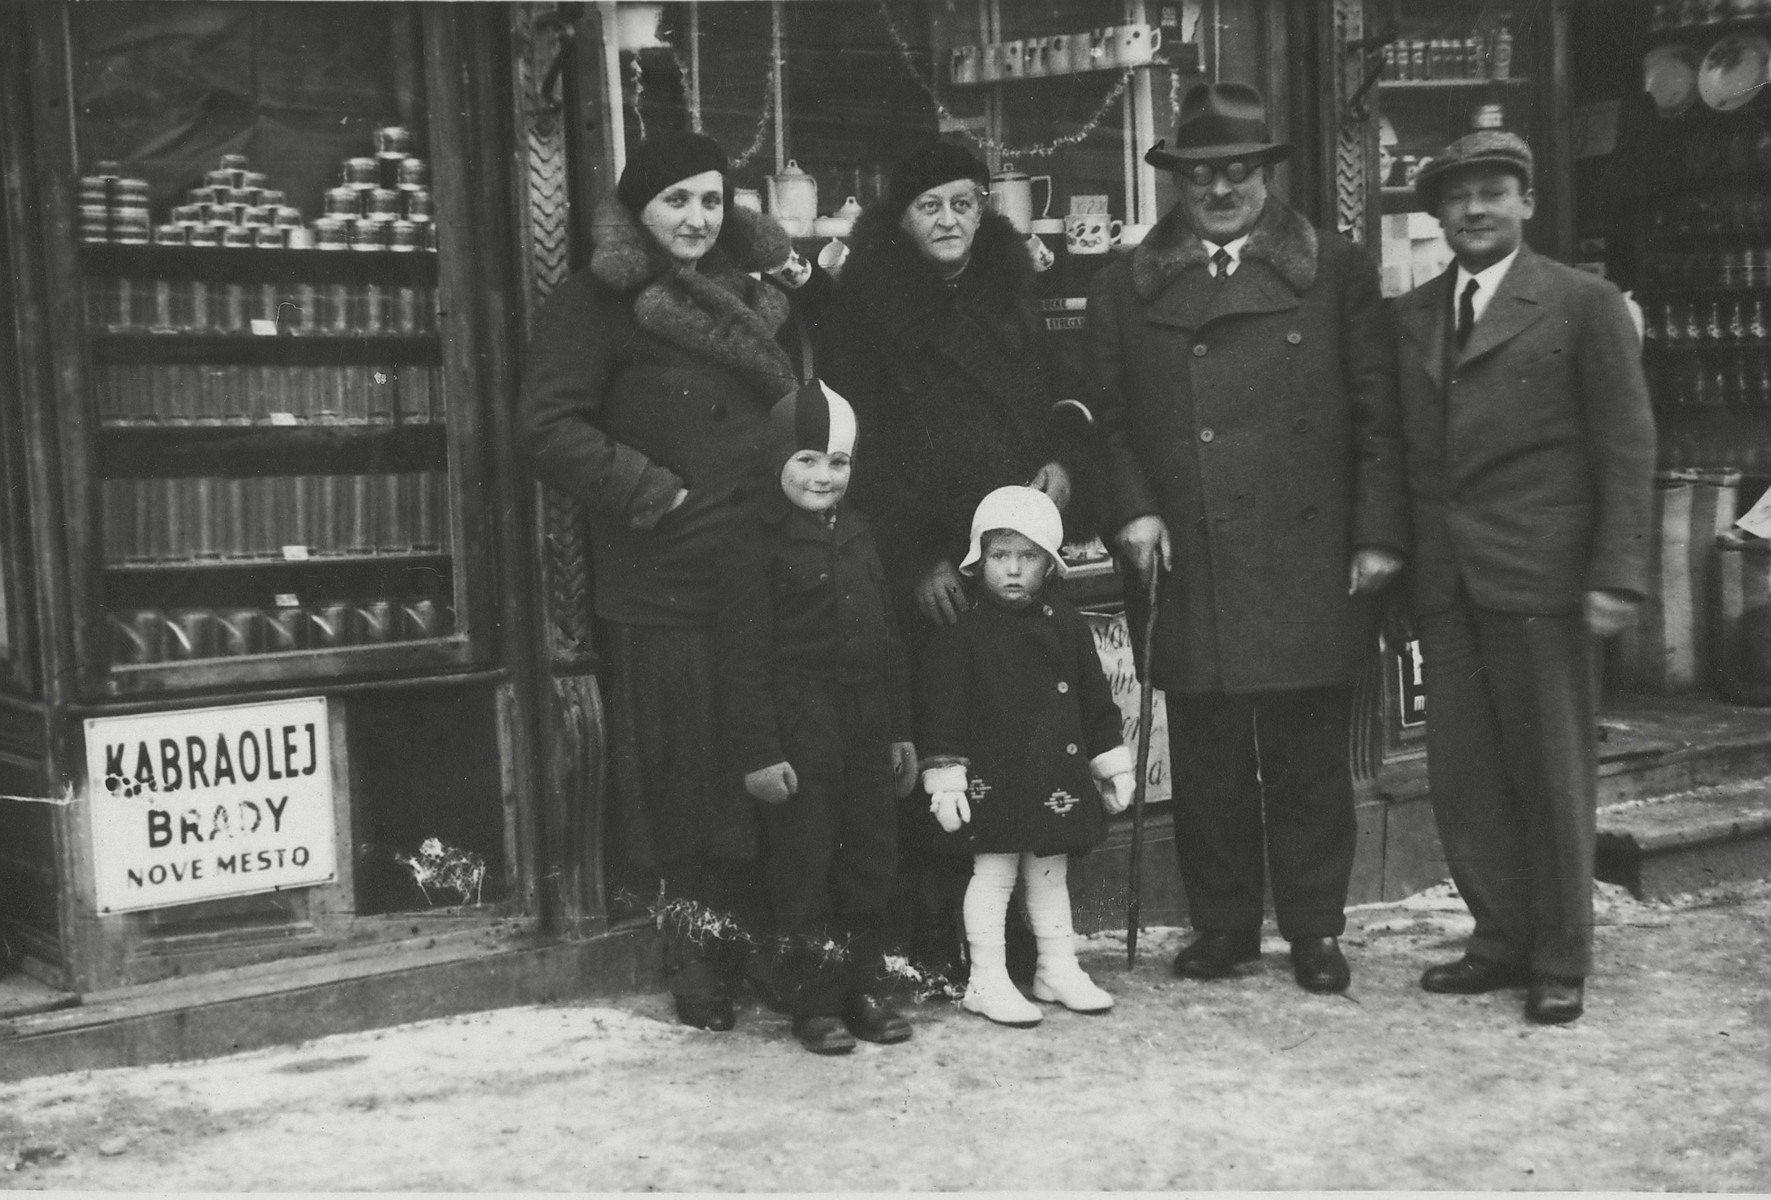 The Brady family stands outside their store in Nove Mesto.